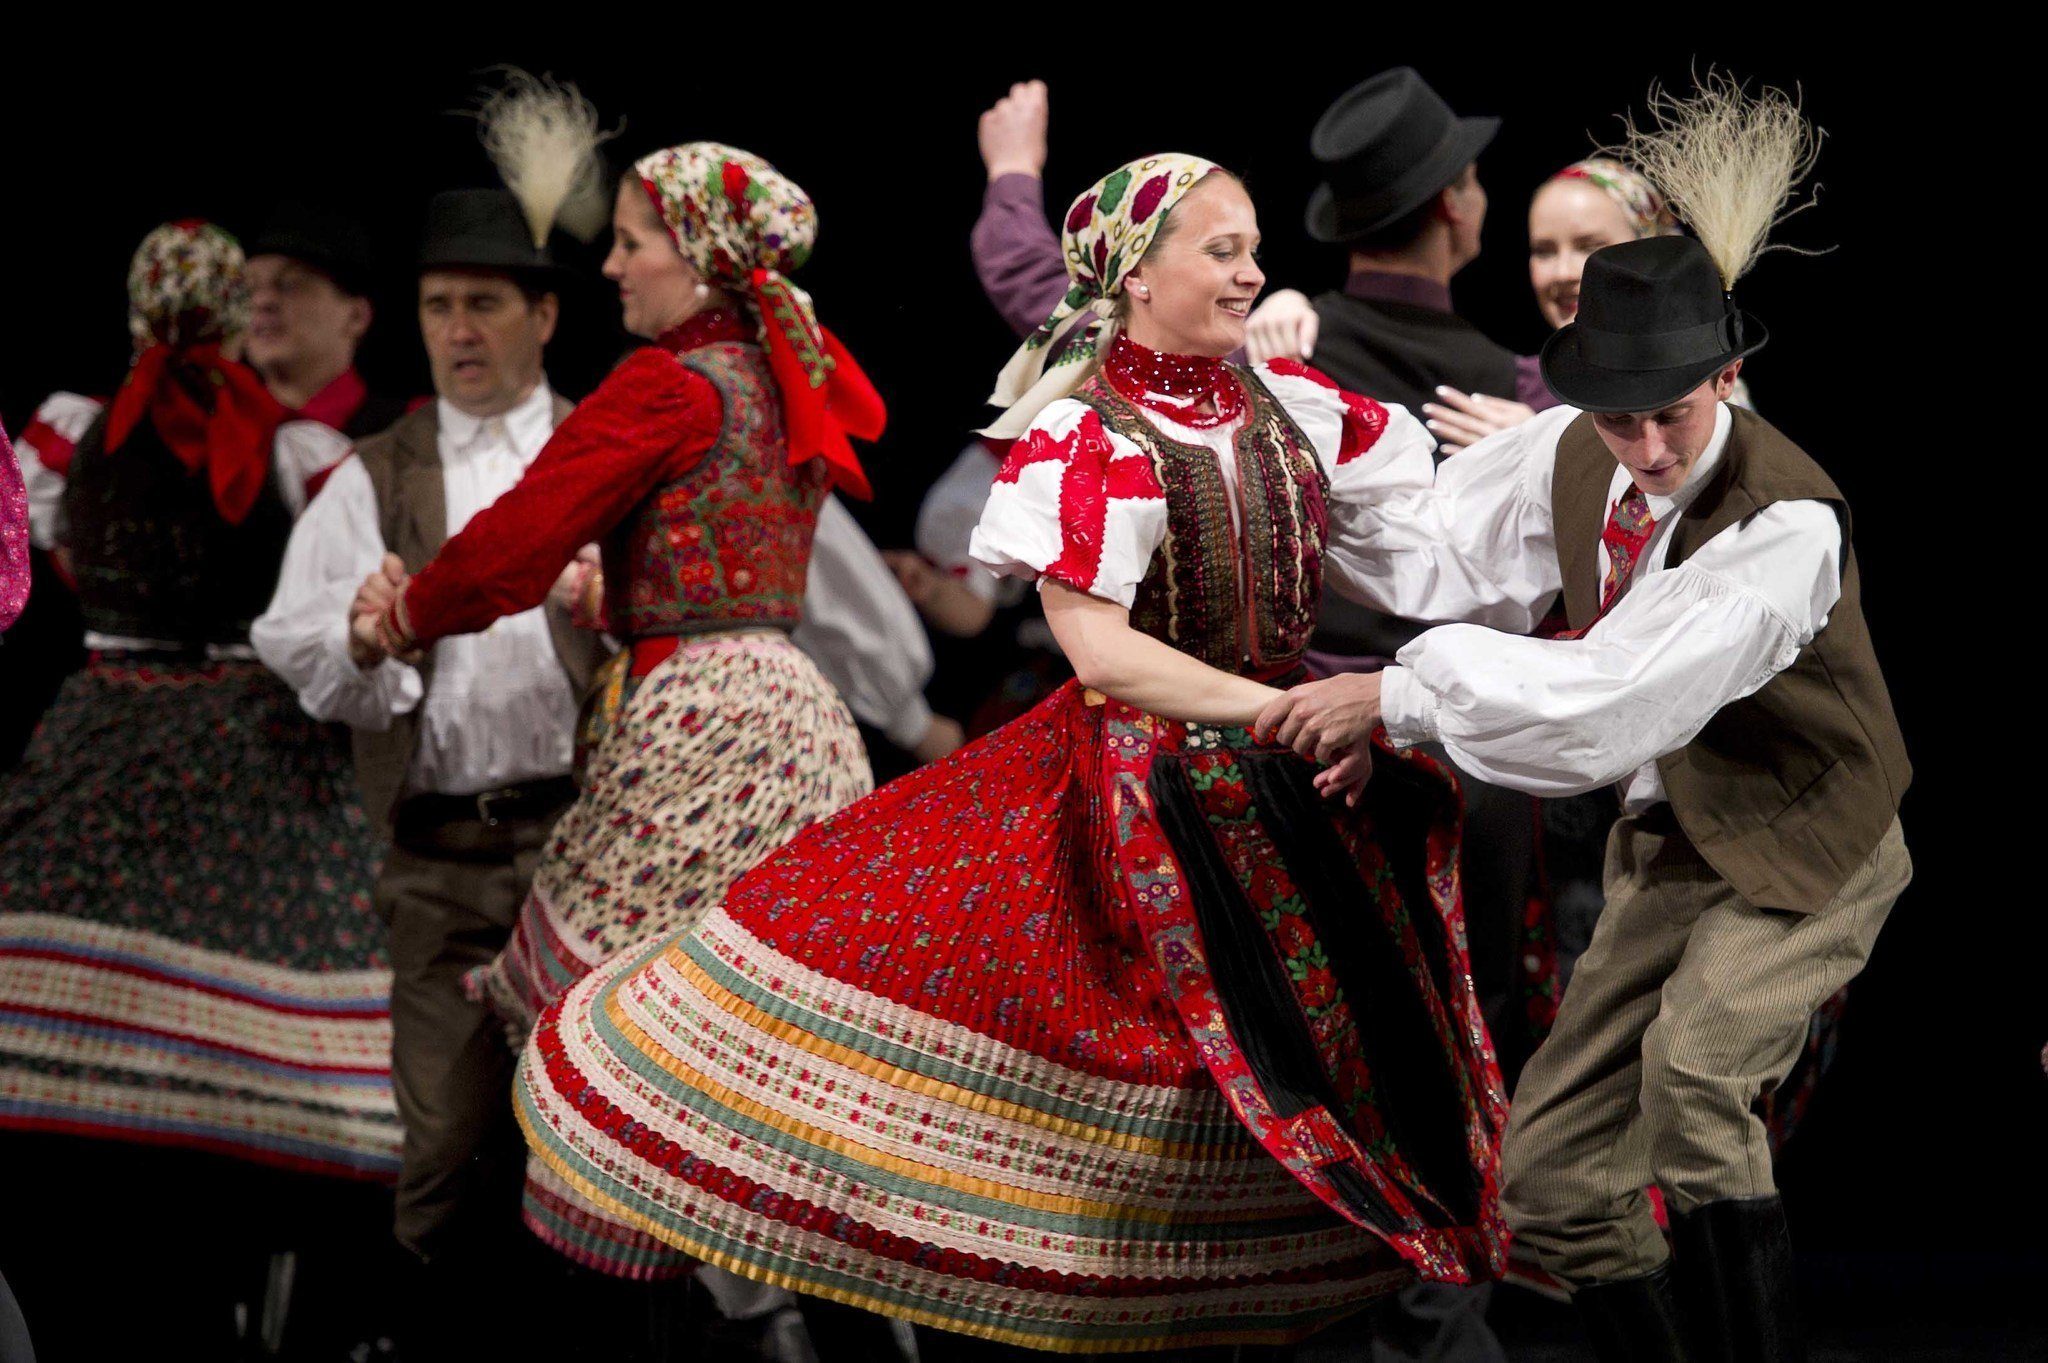 Lithuanians are ready to meet Hungarian folklore